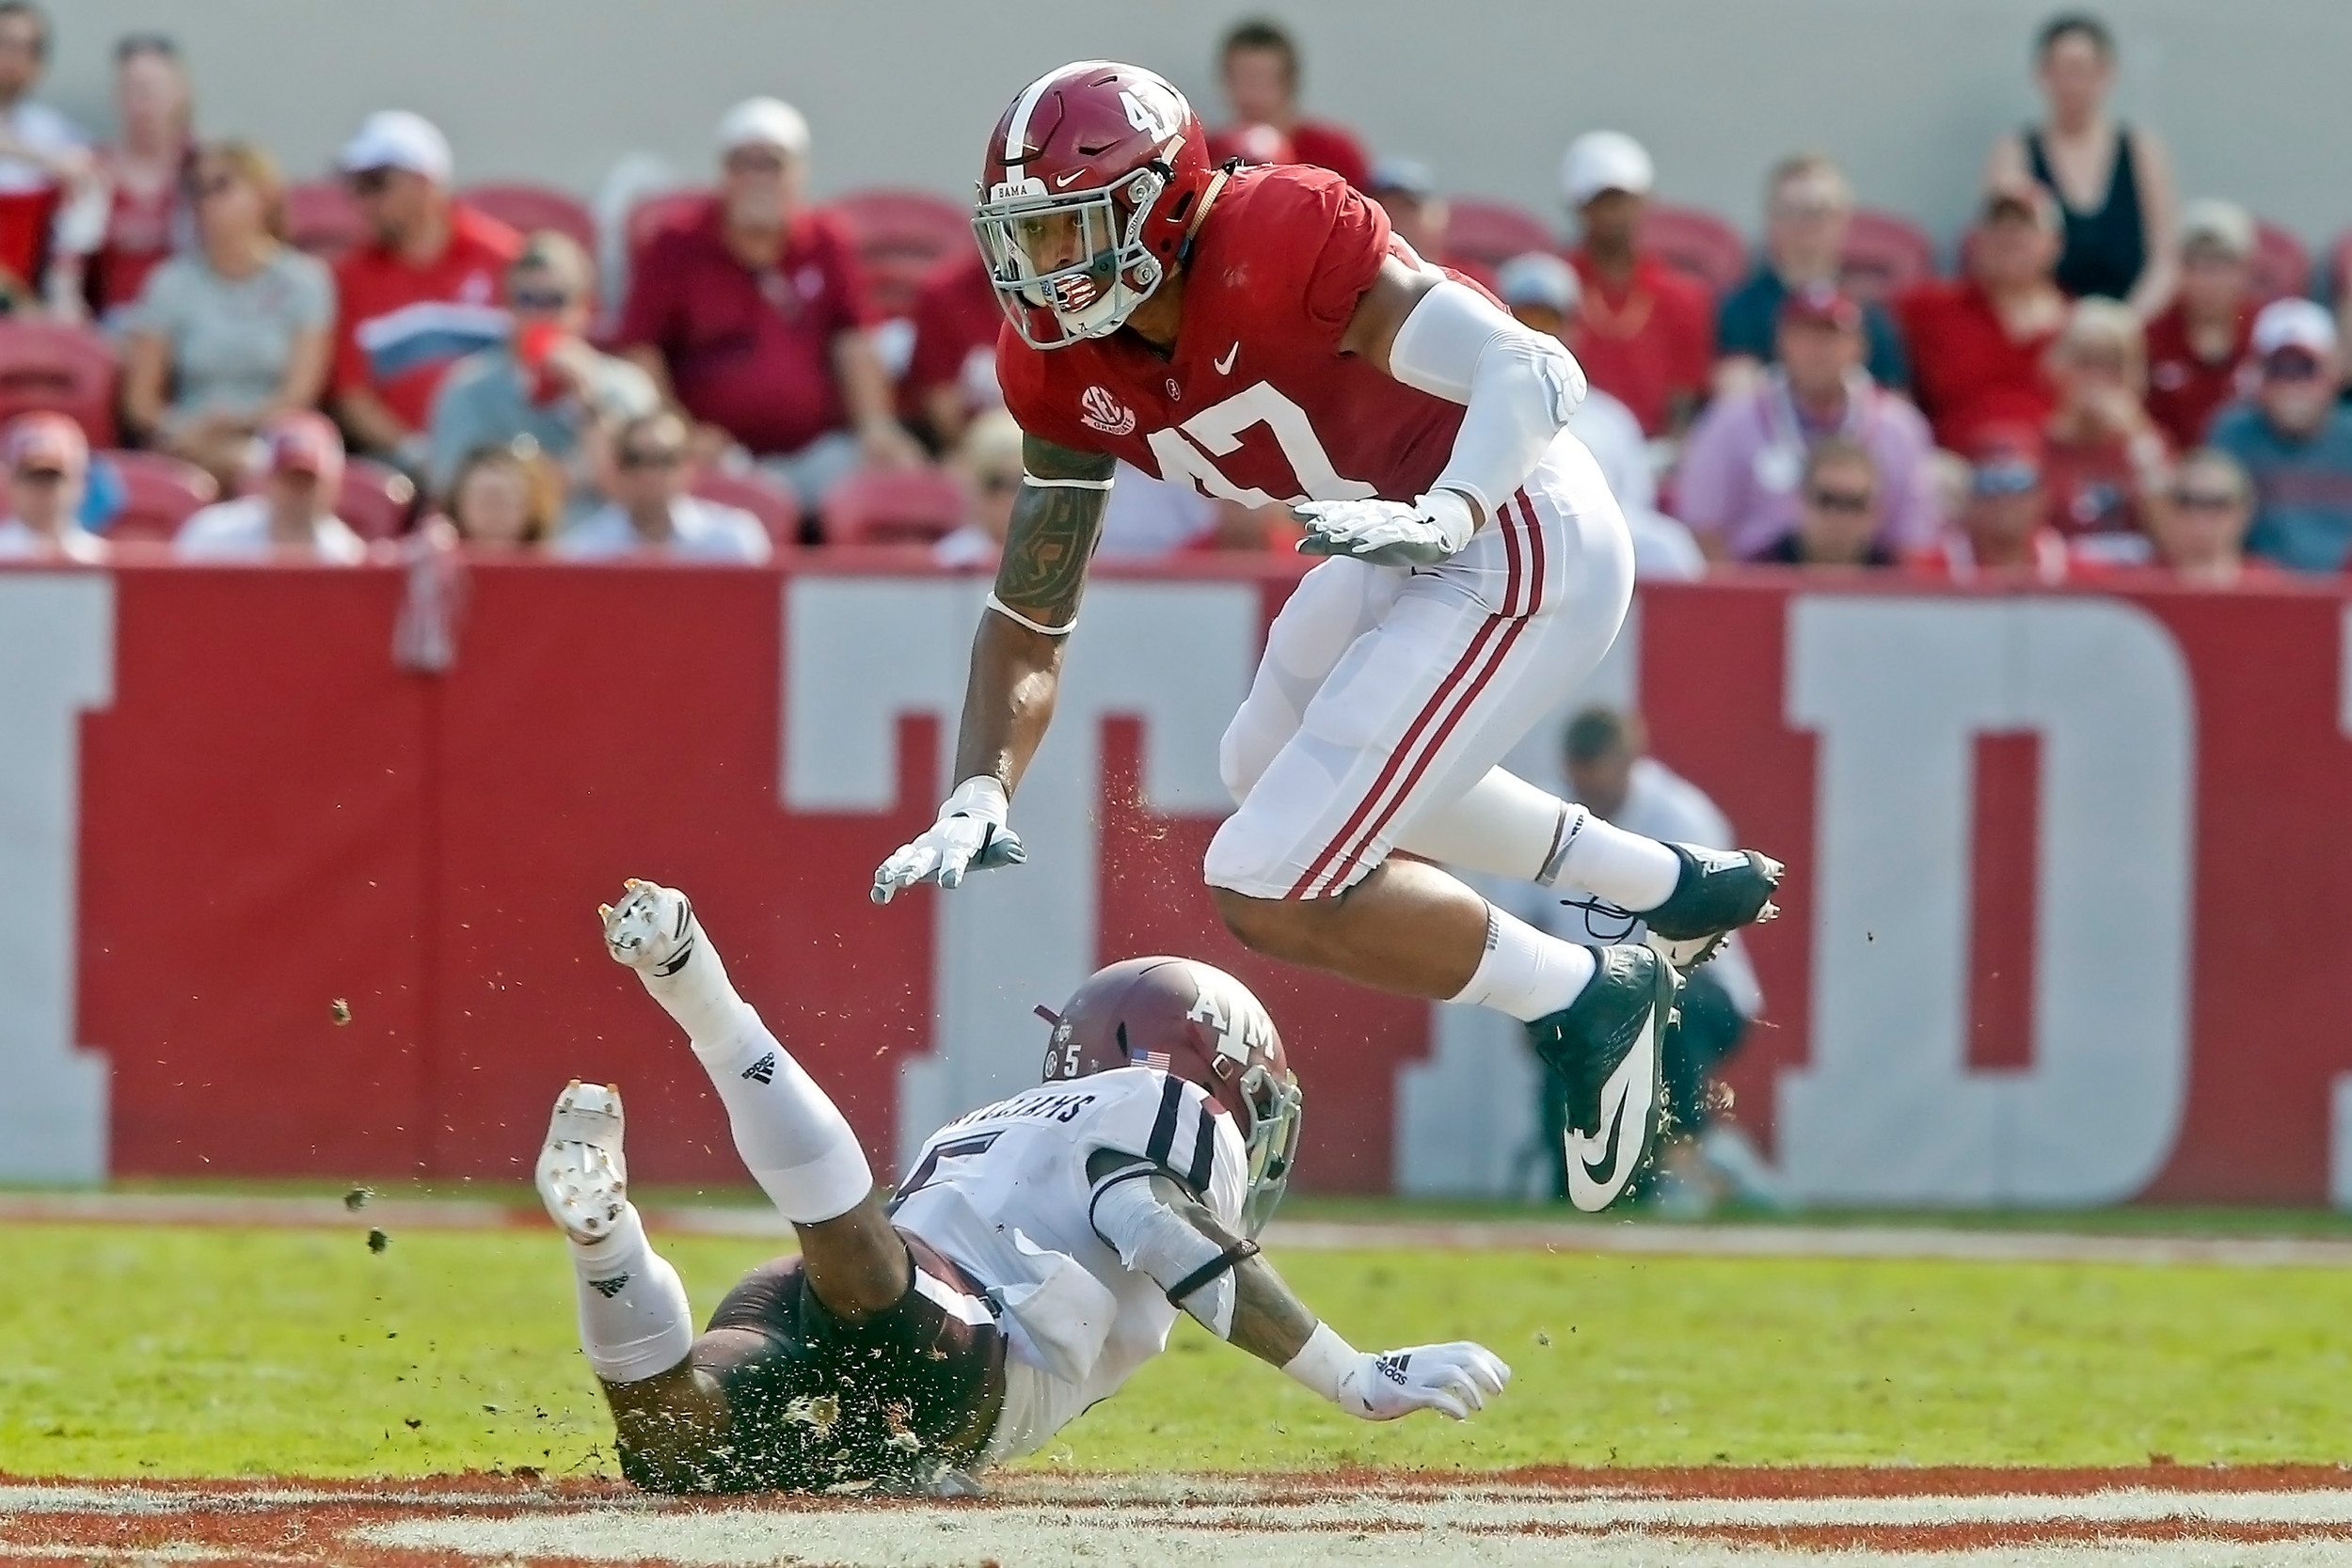 Texas A&M Aggies running back Trayveon Williams (5) attempts to block Alabama Crimson Tide linebacker Christian Miller (47) during the game between the Texas A&M Aggies and the University of Alabama Crimson Tide at Bryant-Denny Stadium.  Jason Clark / Daily Mountain Eagle